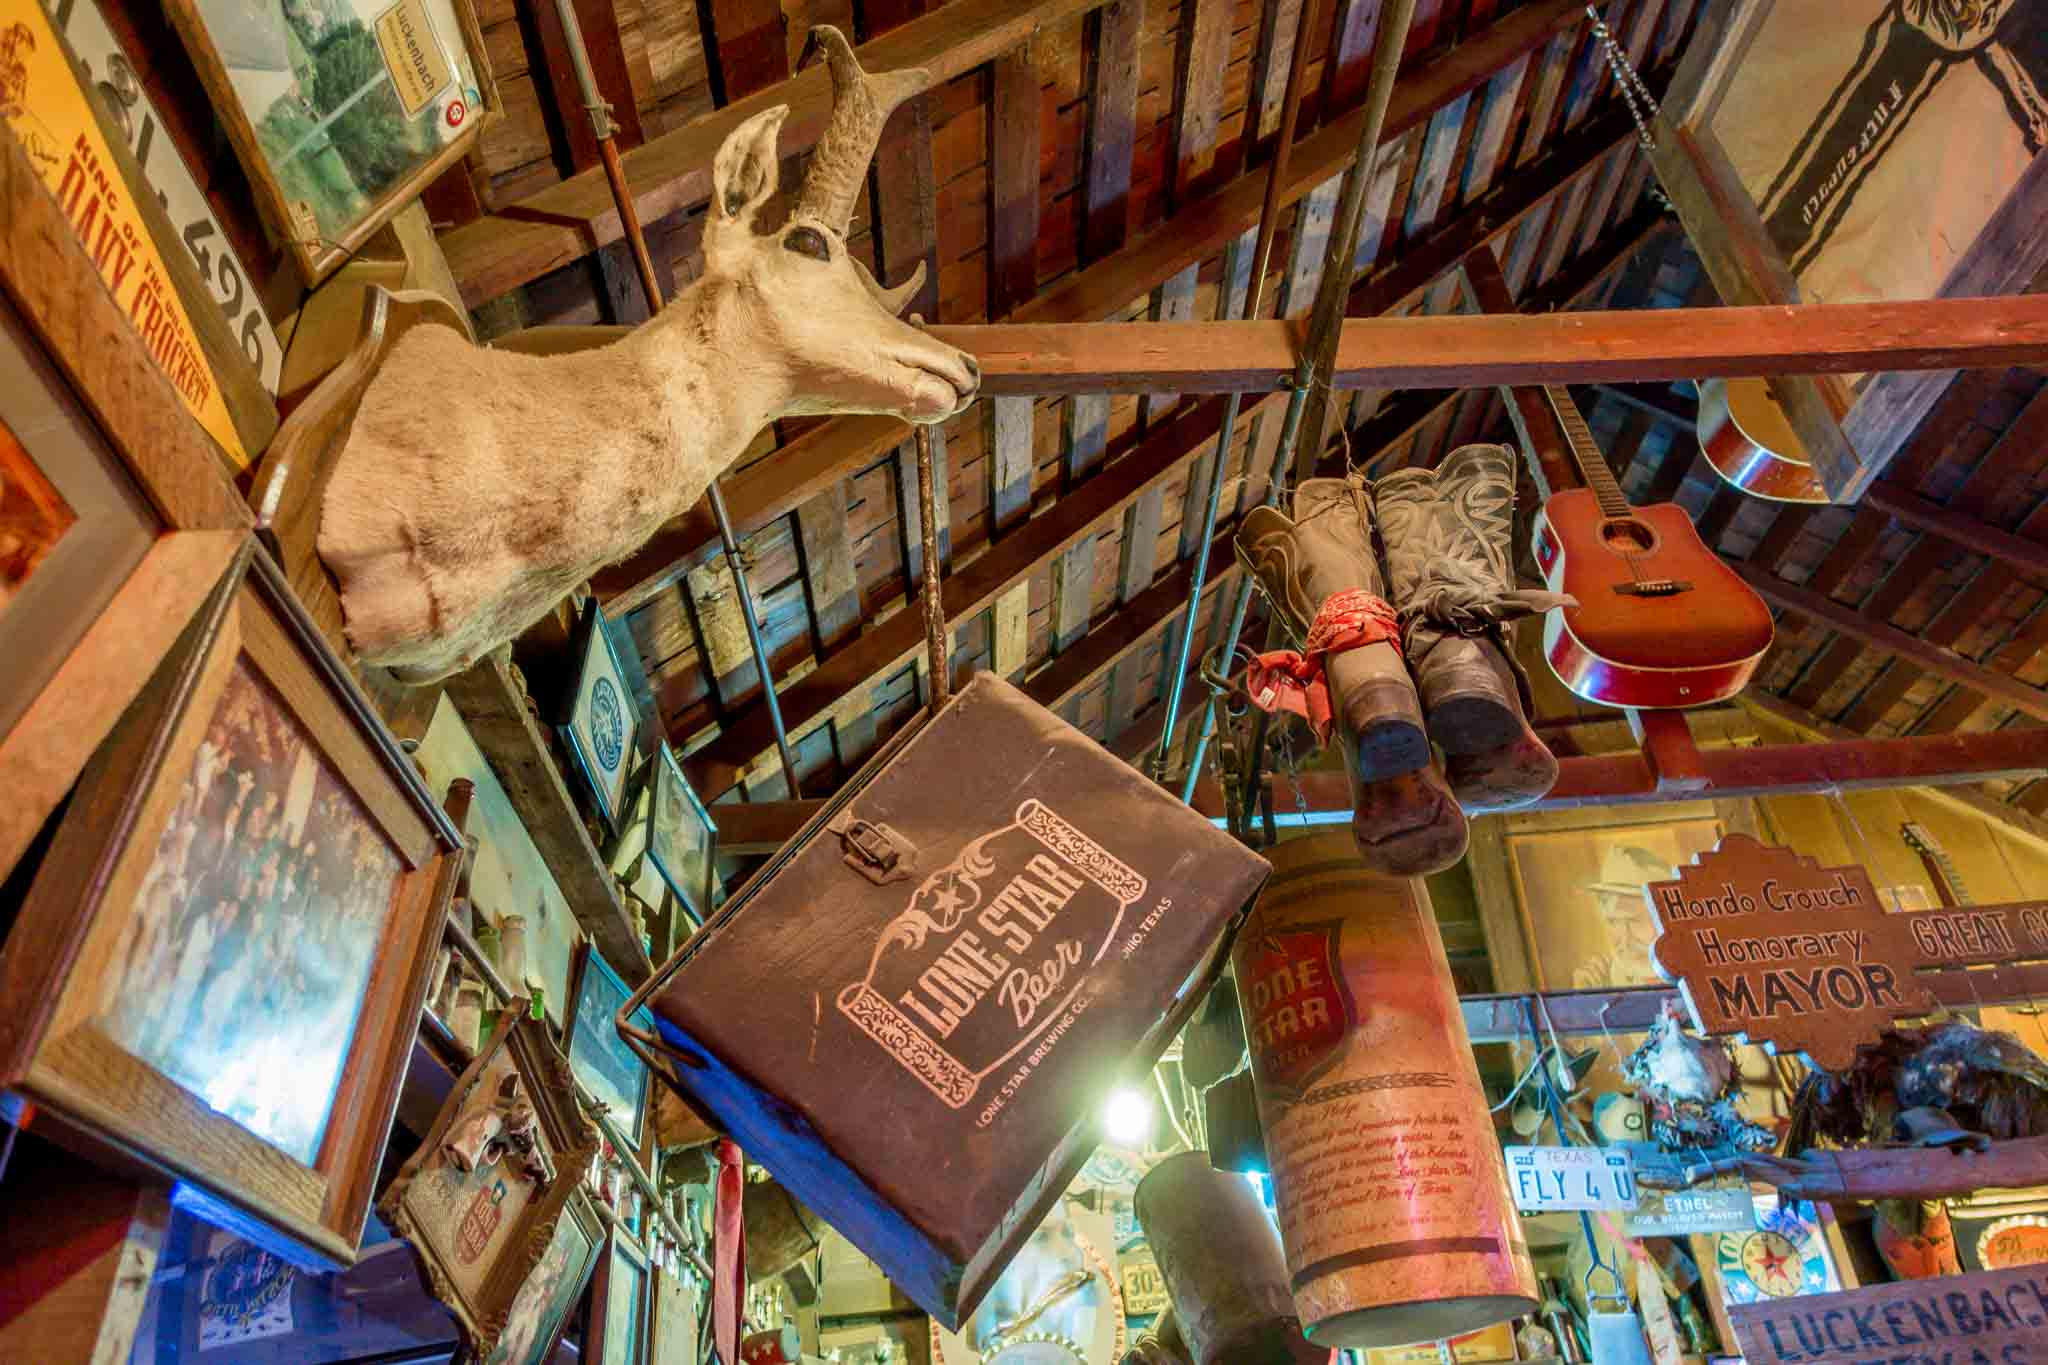 Music memorabilia hanging from ceiling at Luckenbach, Texas